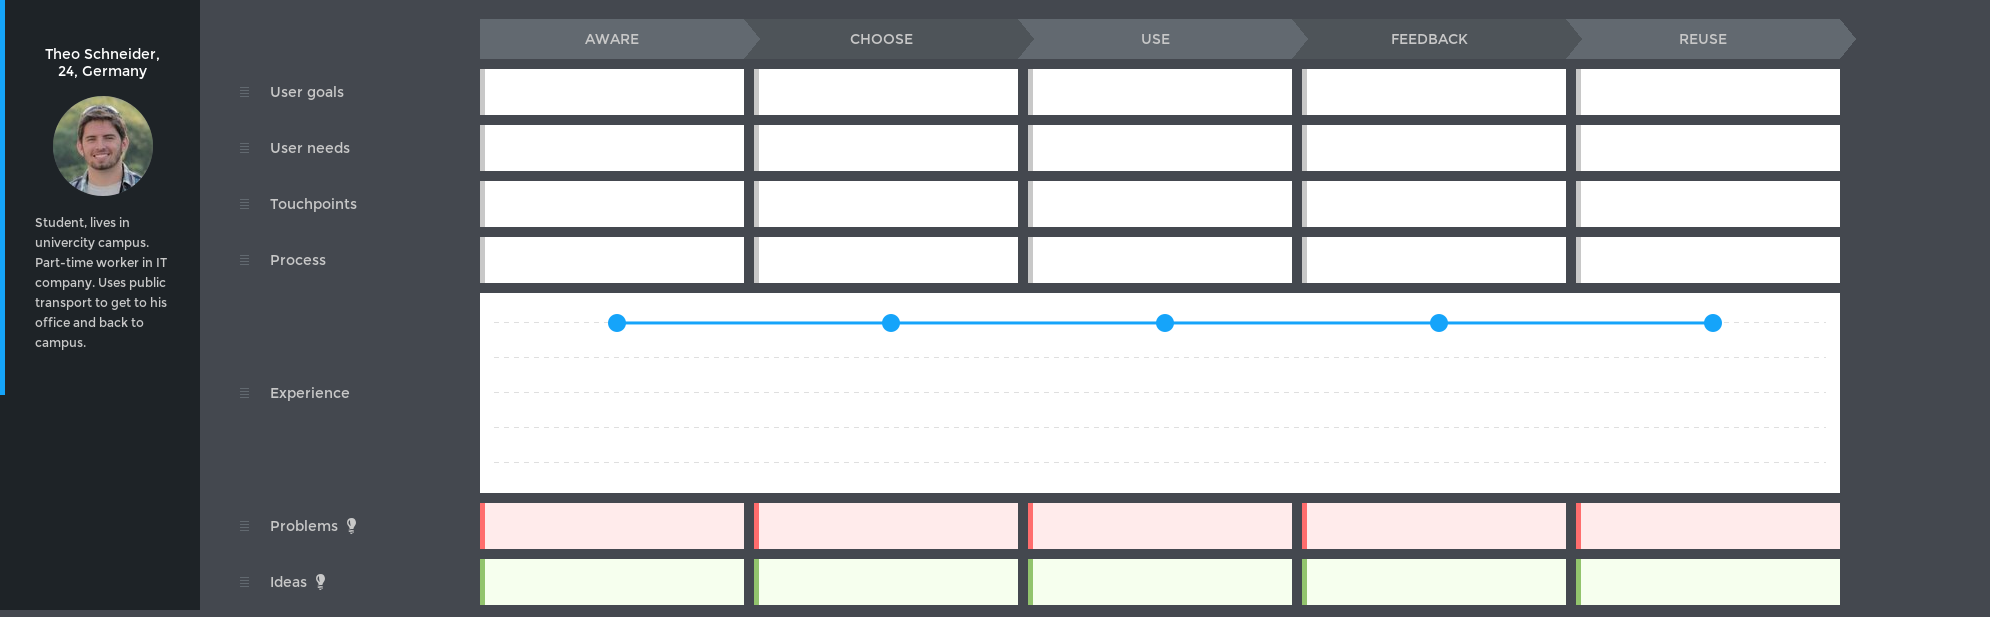 Customer Journey Mapping Template For Transtport Customer Journey Mapping Journey Mapping Experience Map